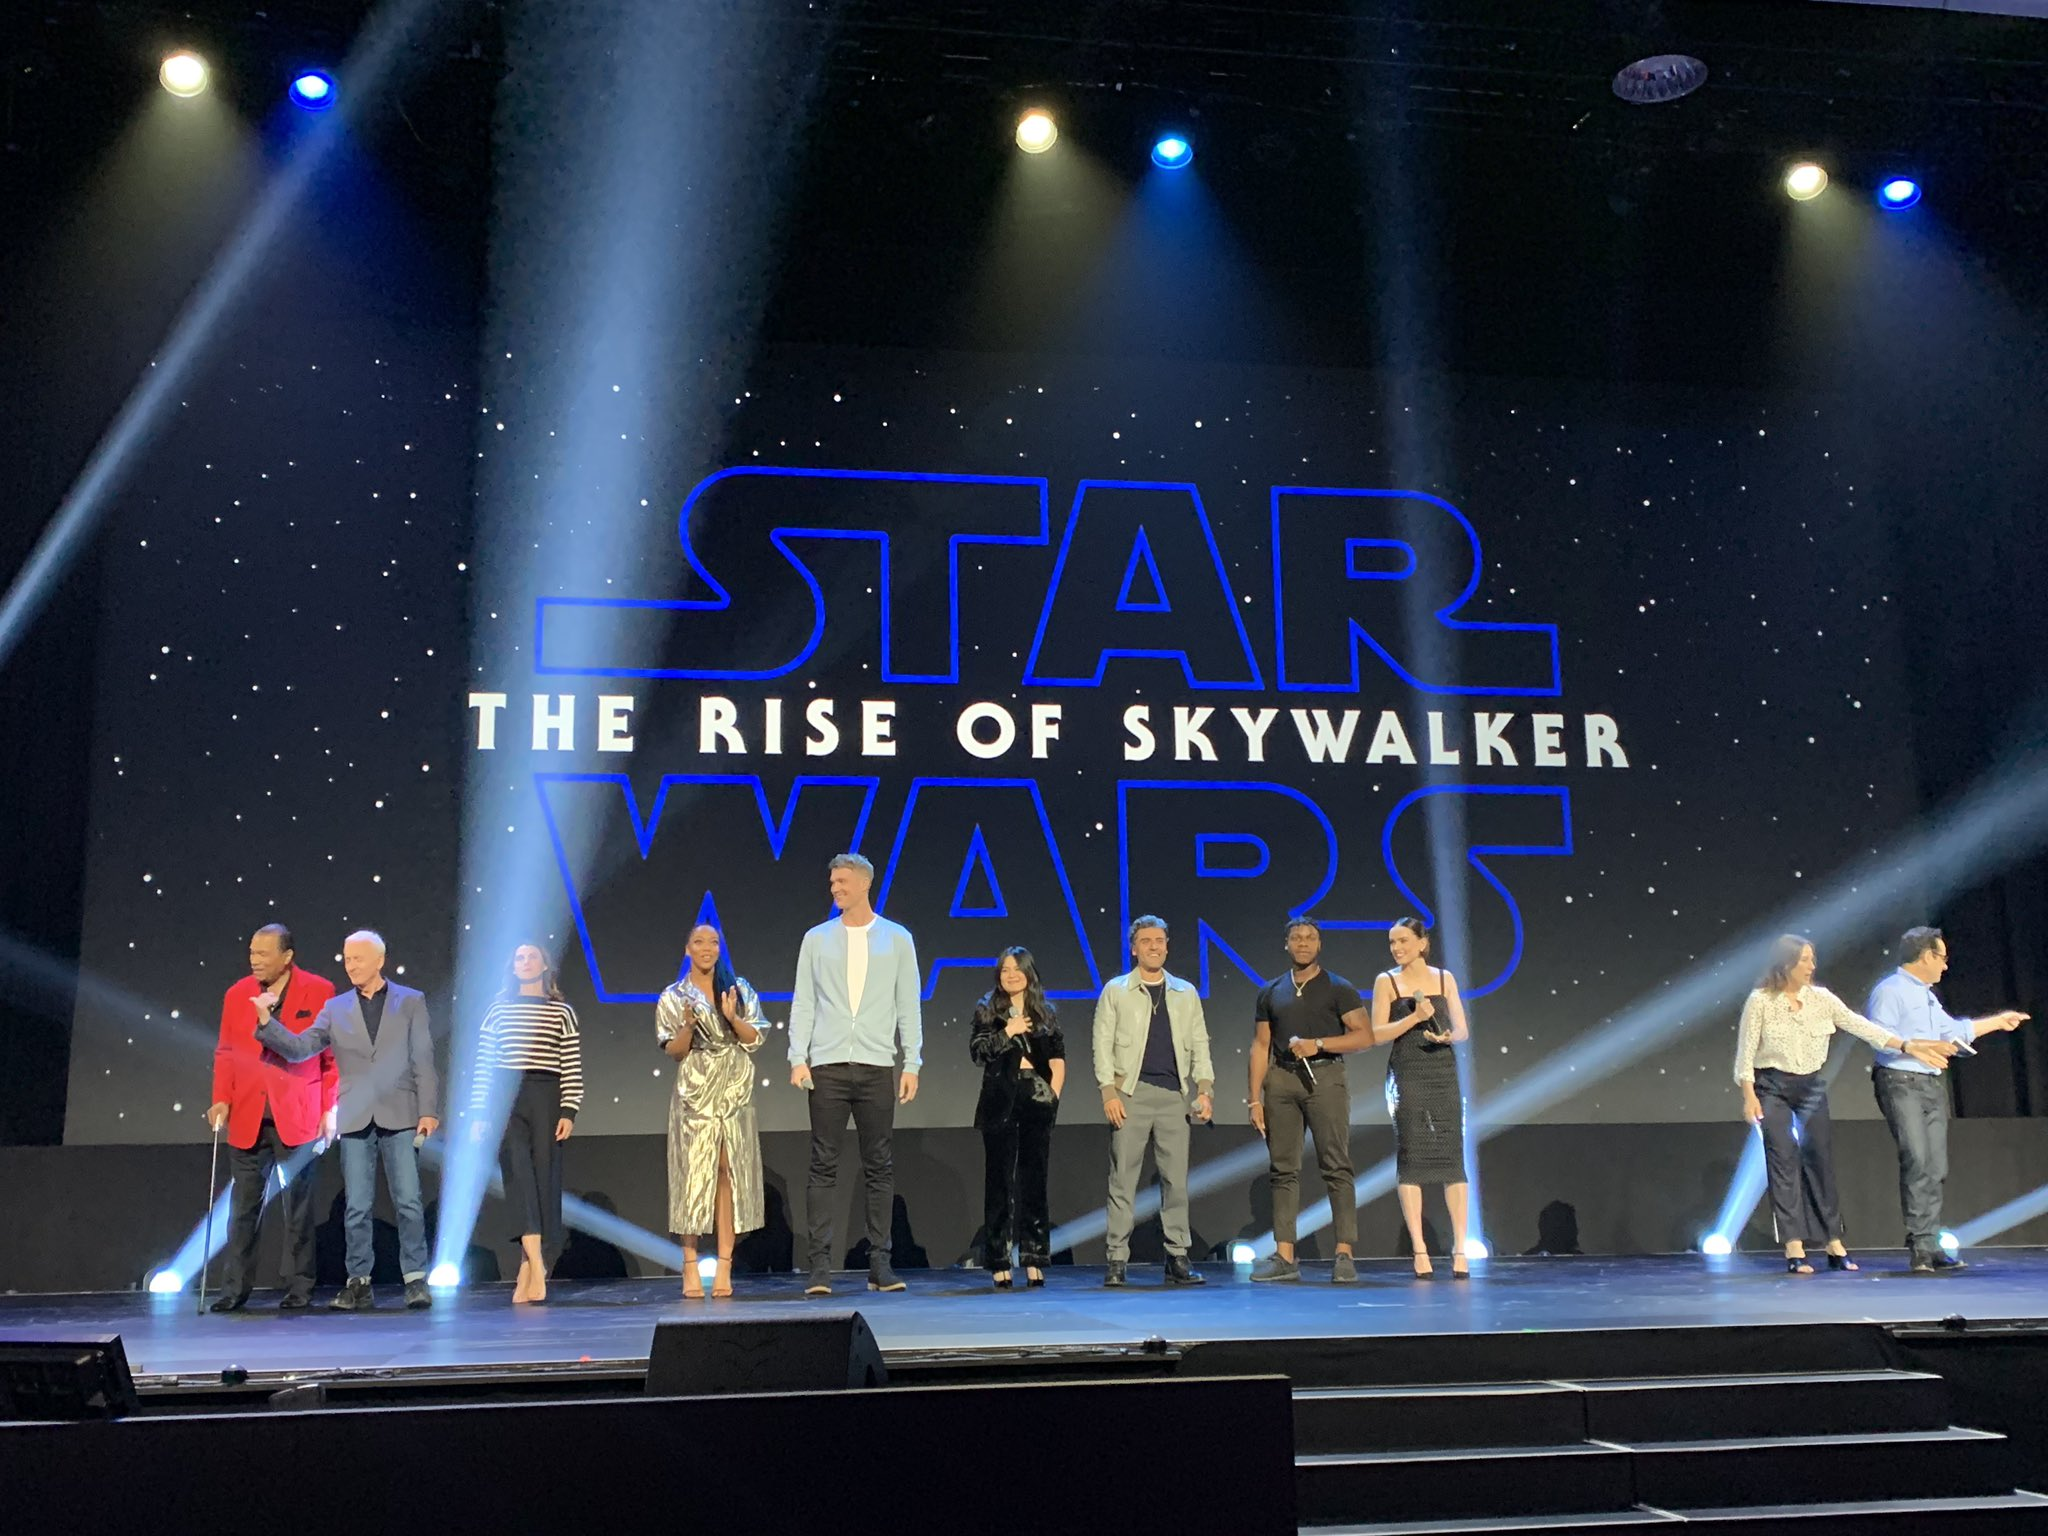 Star Wars: The Rise of Skywalker - D23 Expo: Movies Panel